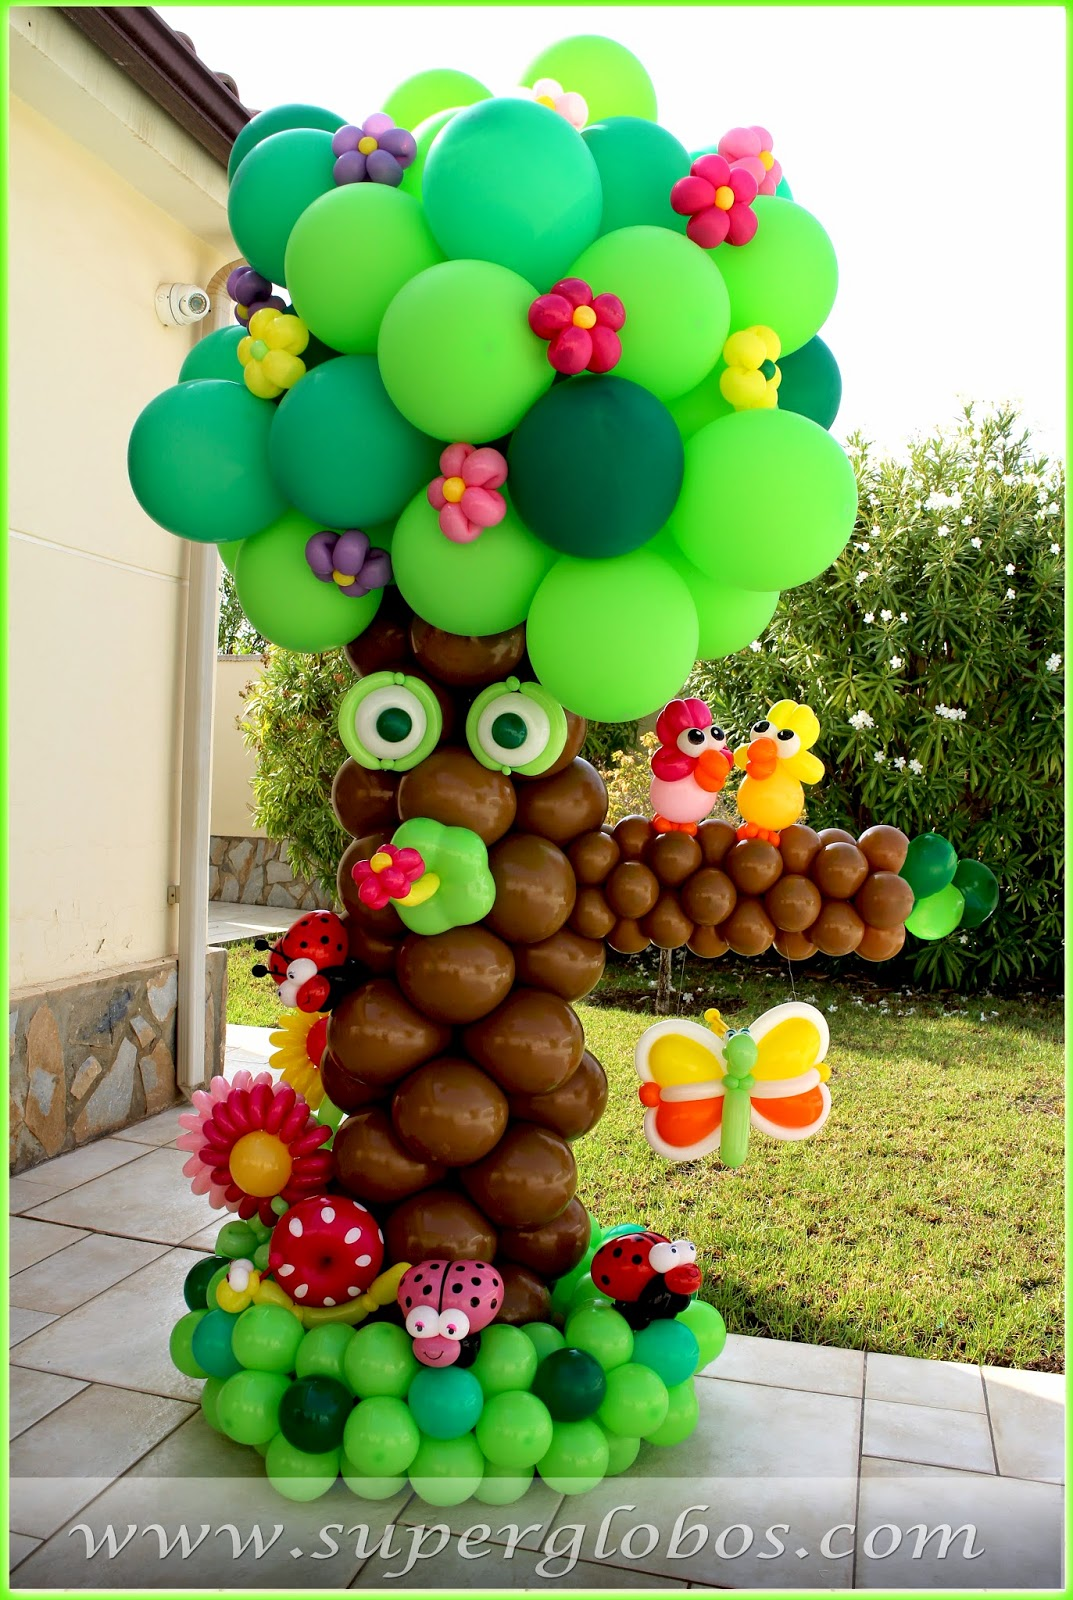 Decoraci n con globos para eventos y fiestas superglobos for Decoracion simple con globos